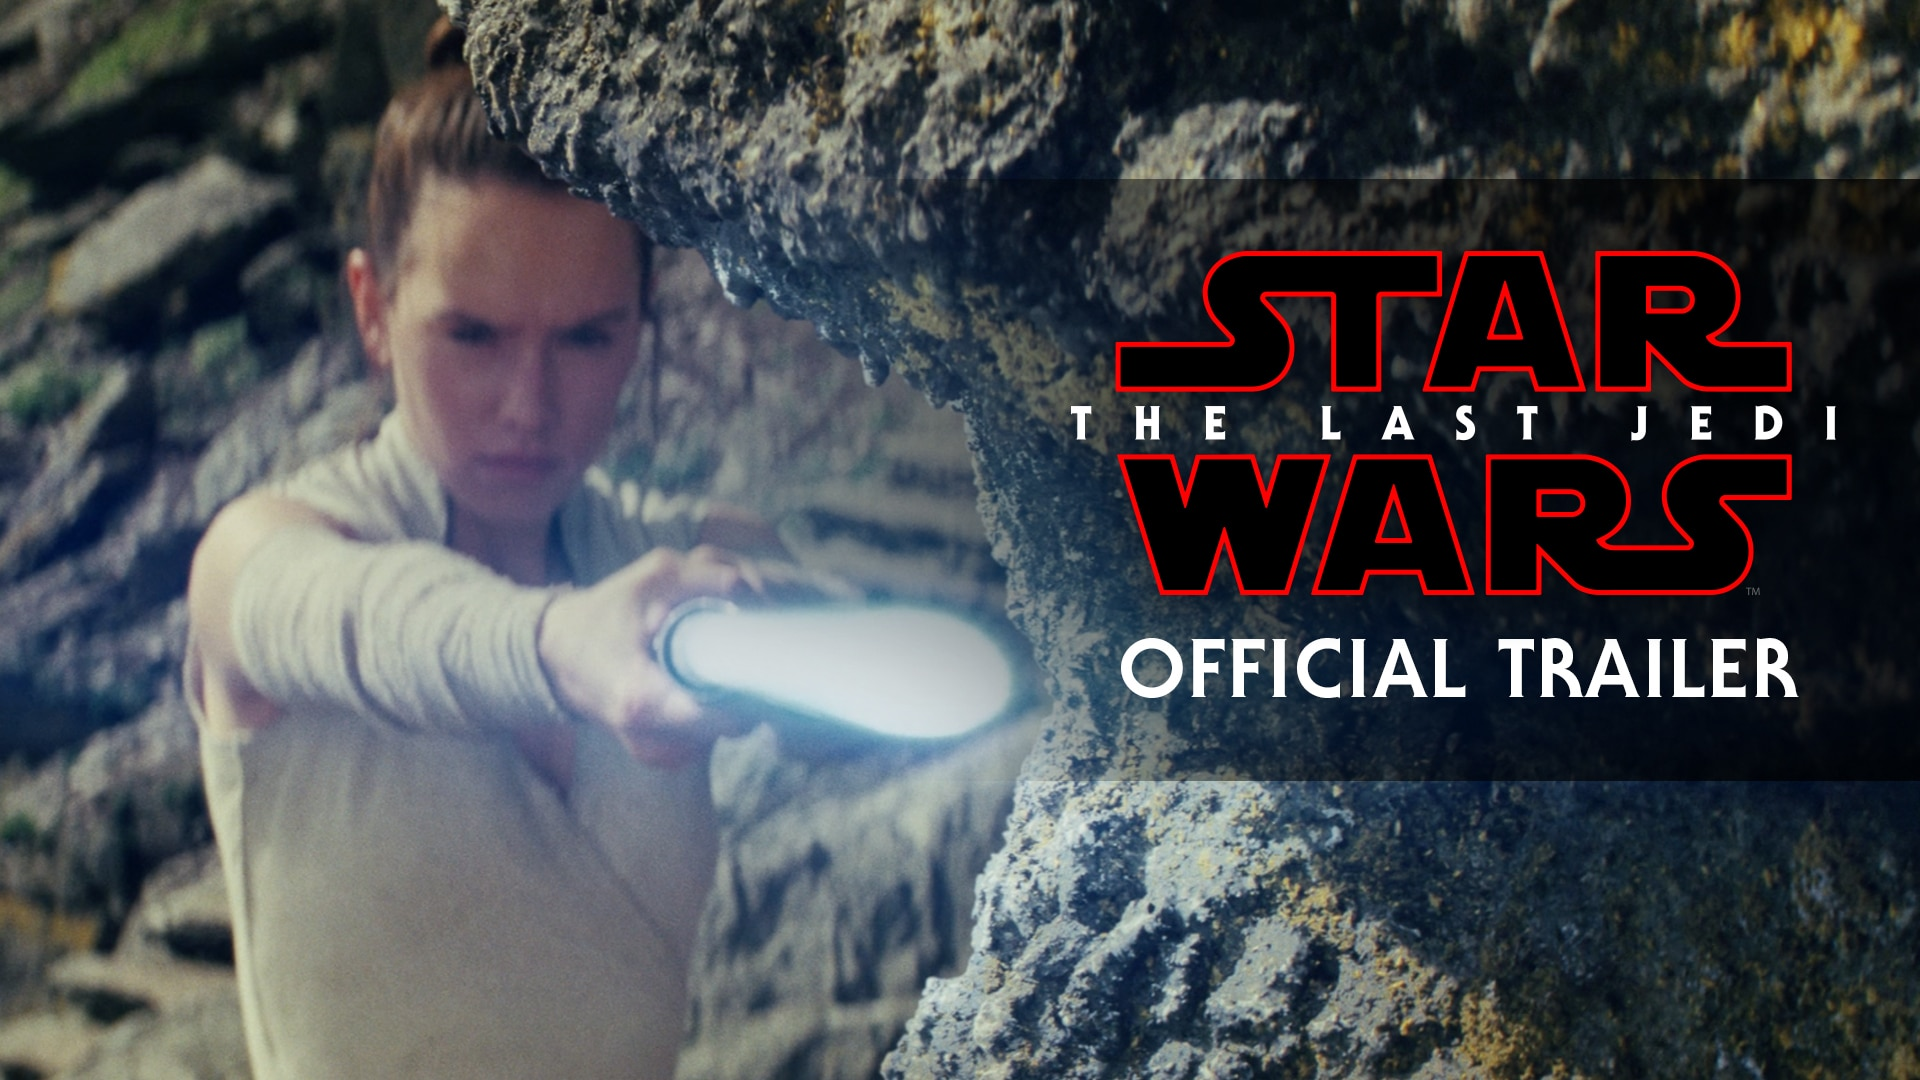 OFFICIAL TRAILER | STAR WARS: THE LAST JEDI